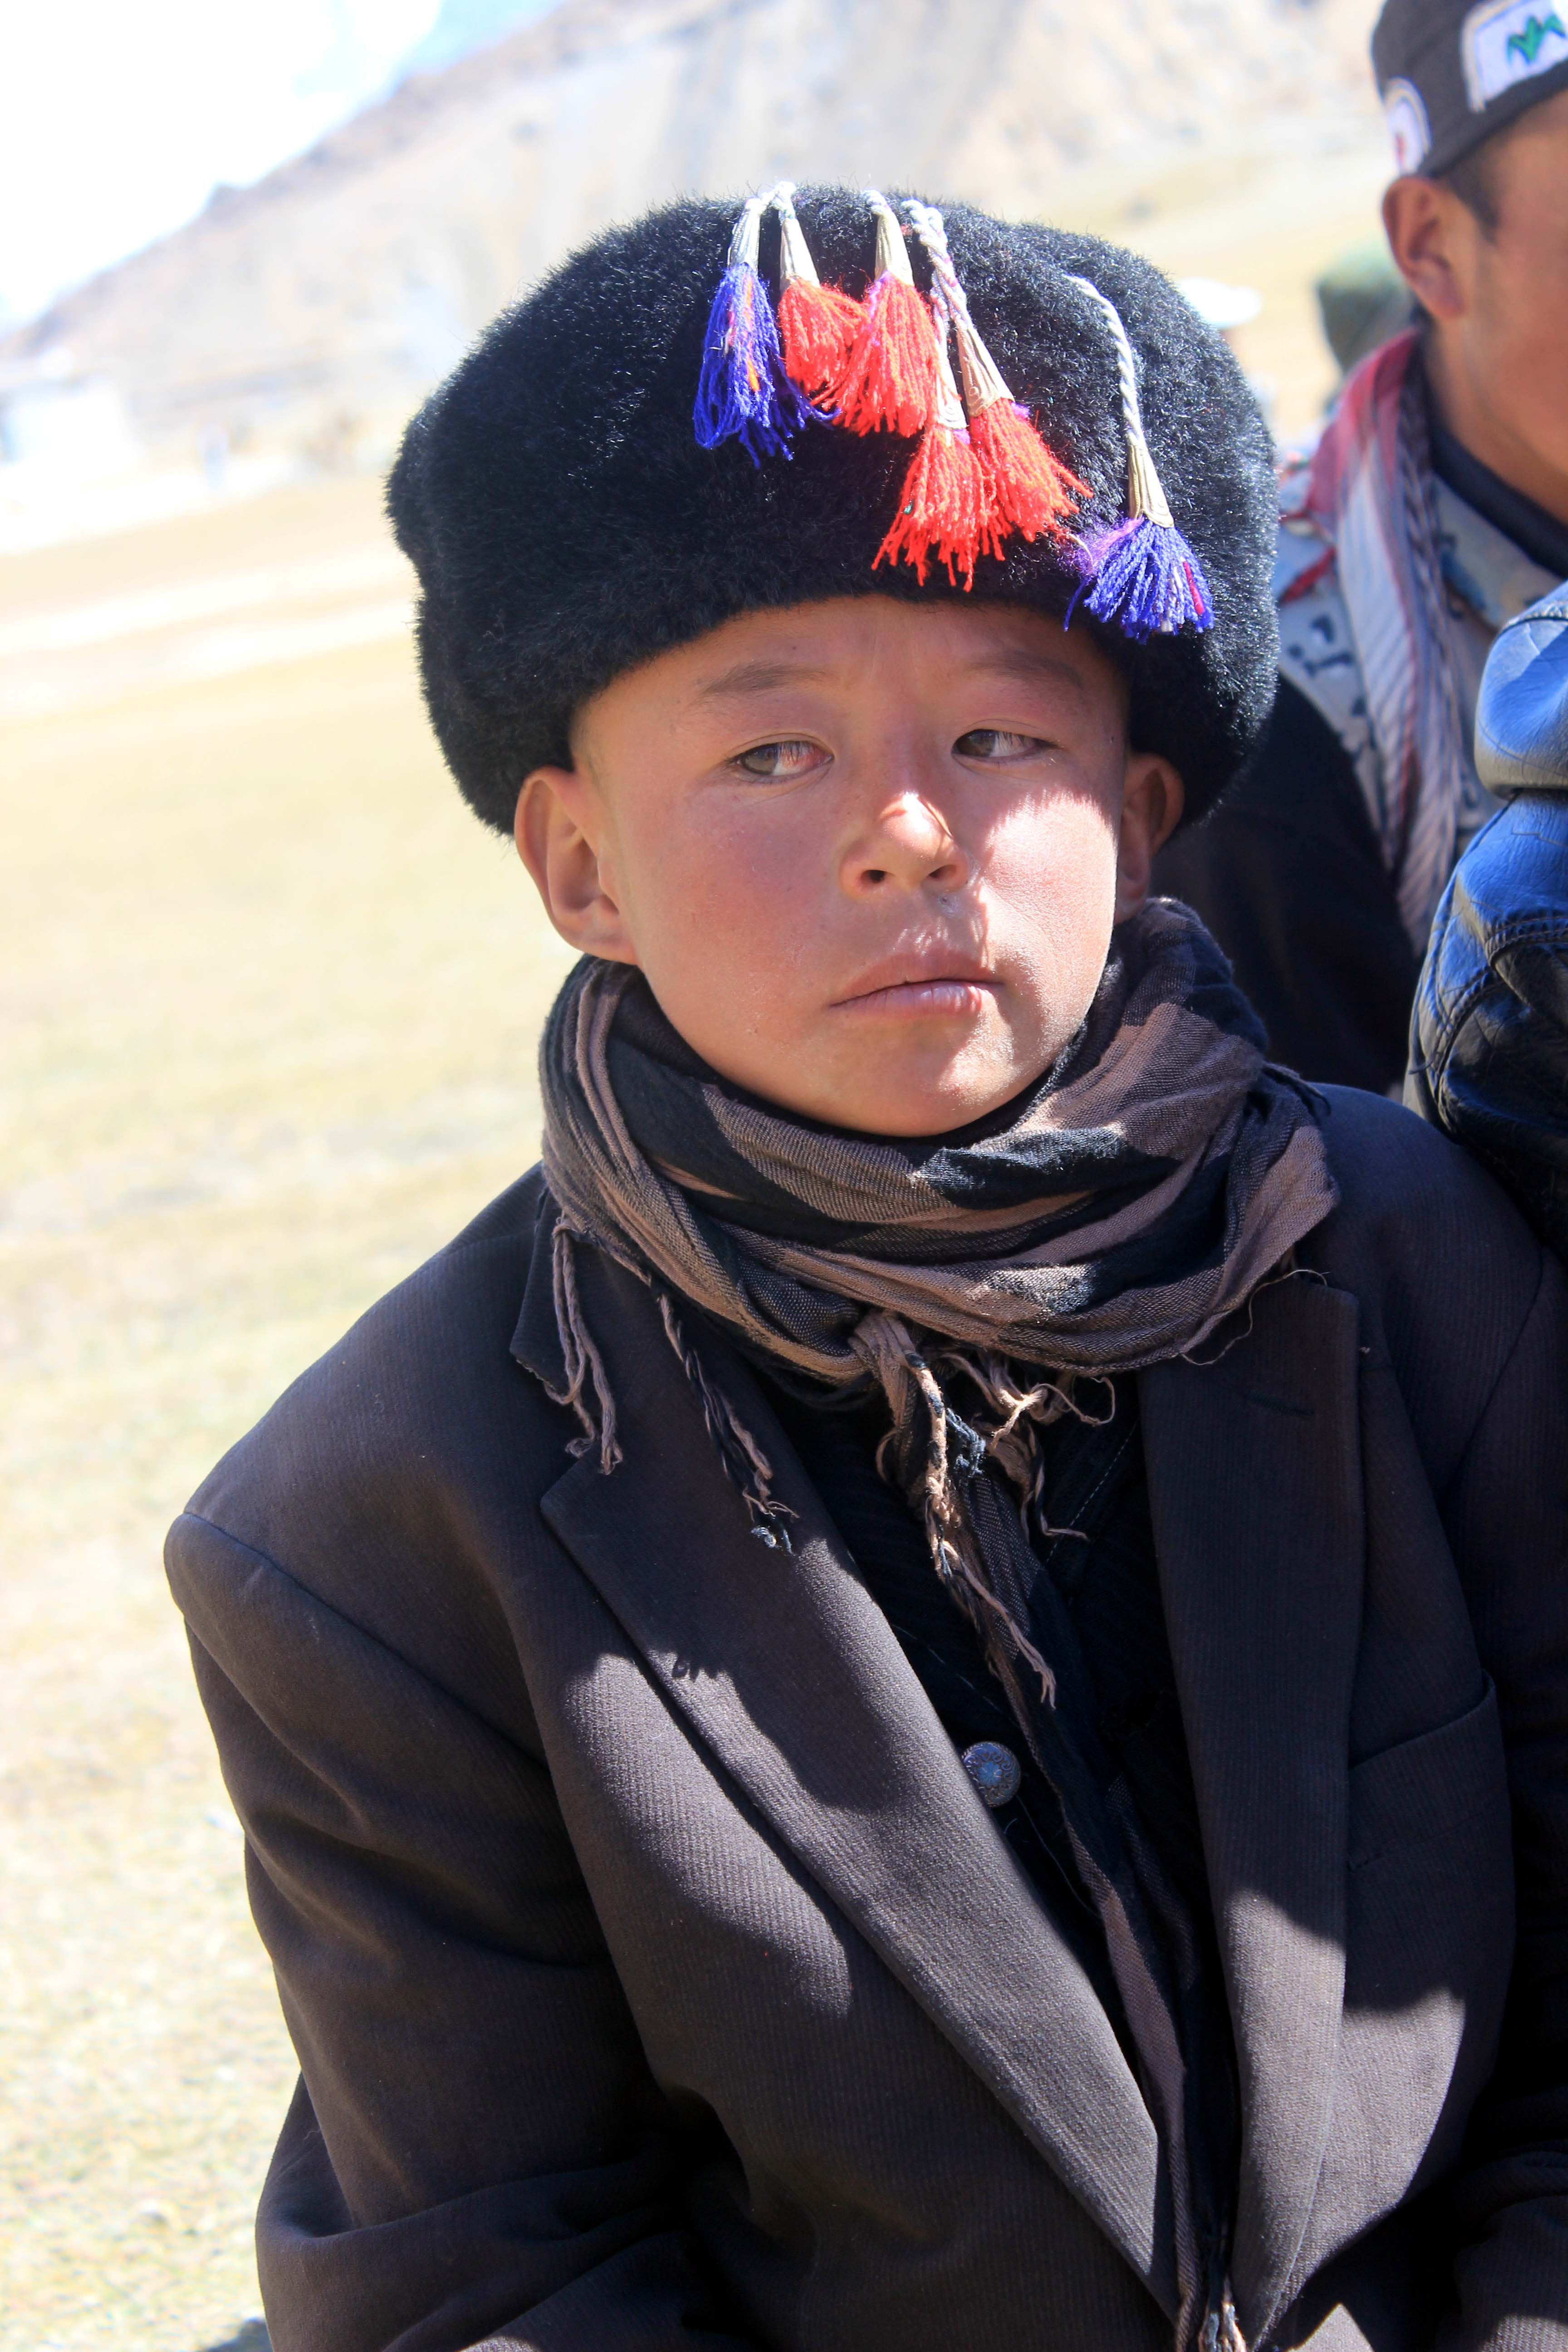 A Kirghiz child who came to attend the festival with his parents